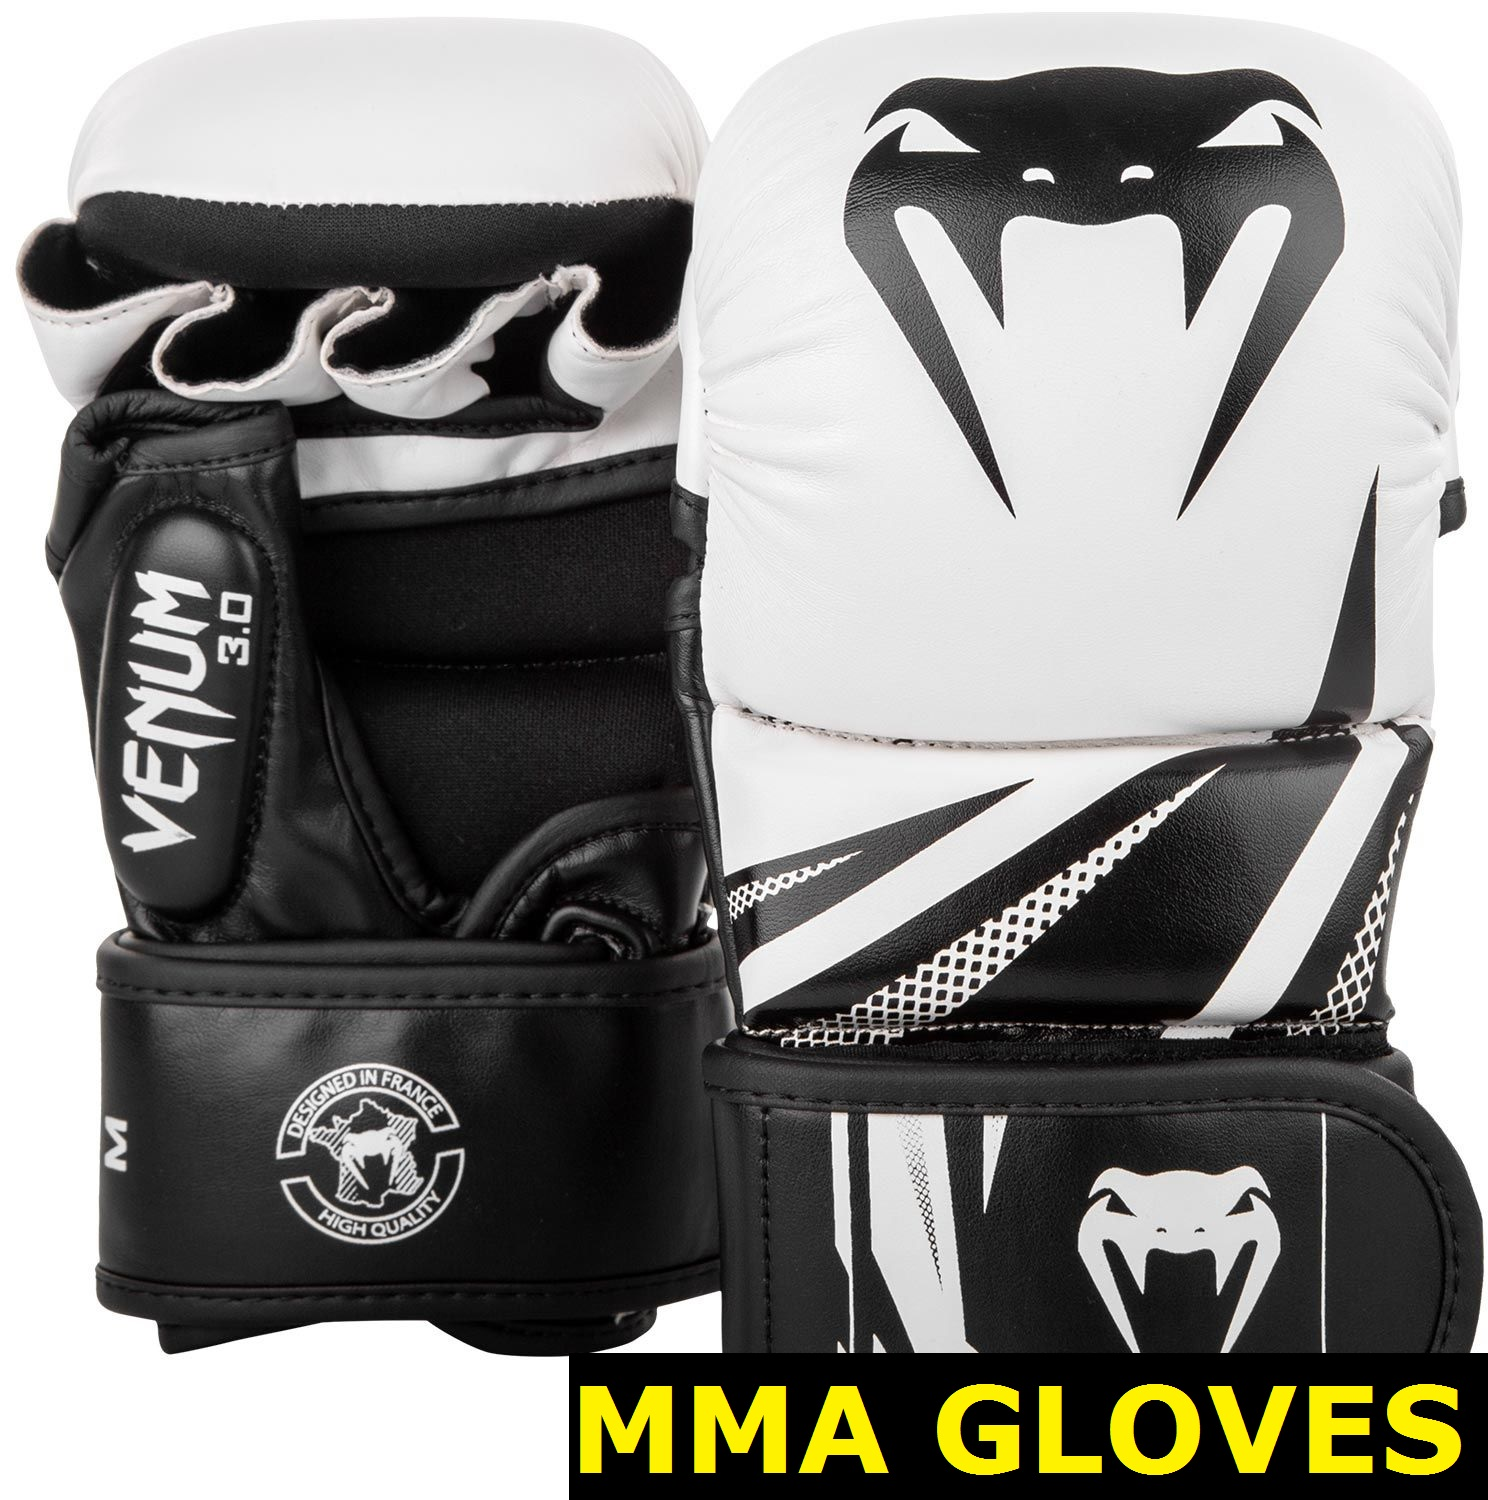 mma-gloves.jpeg